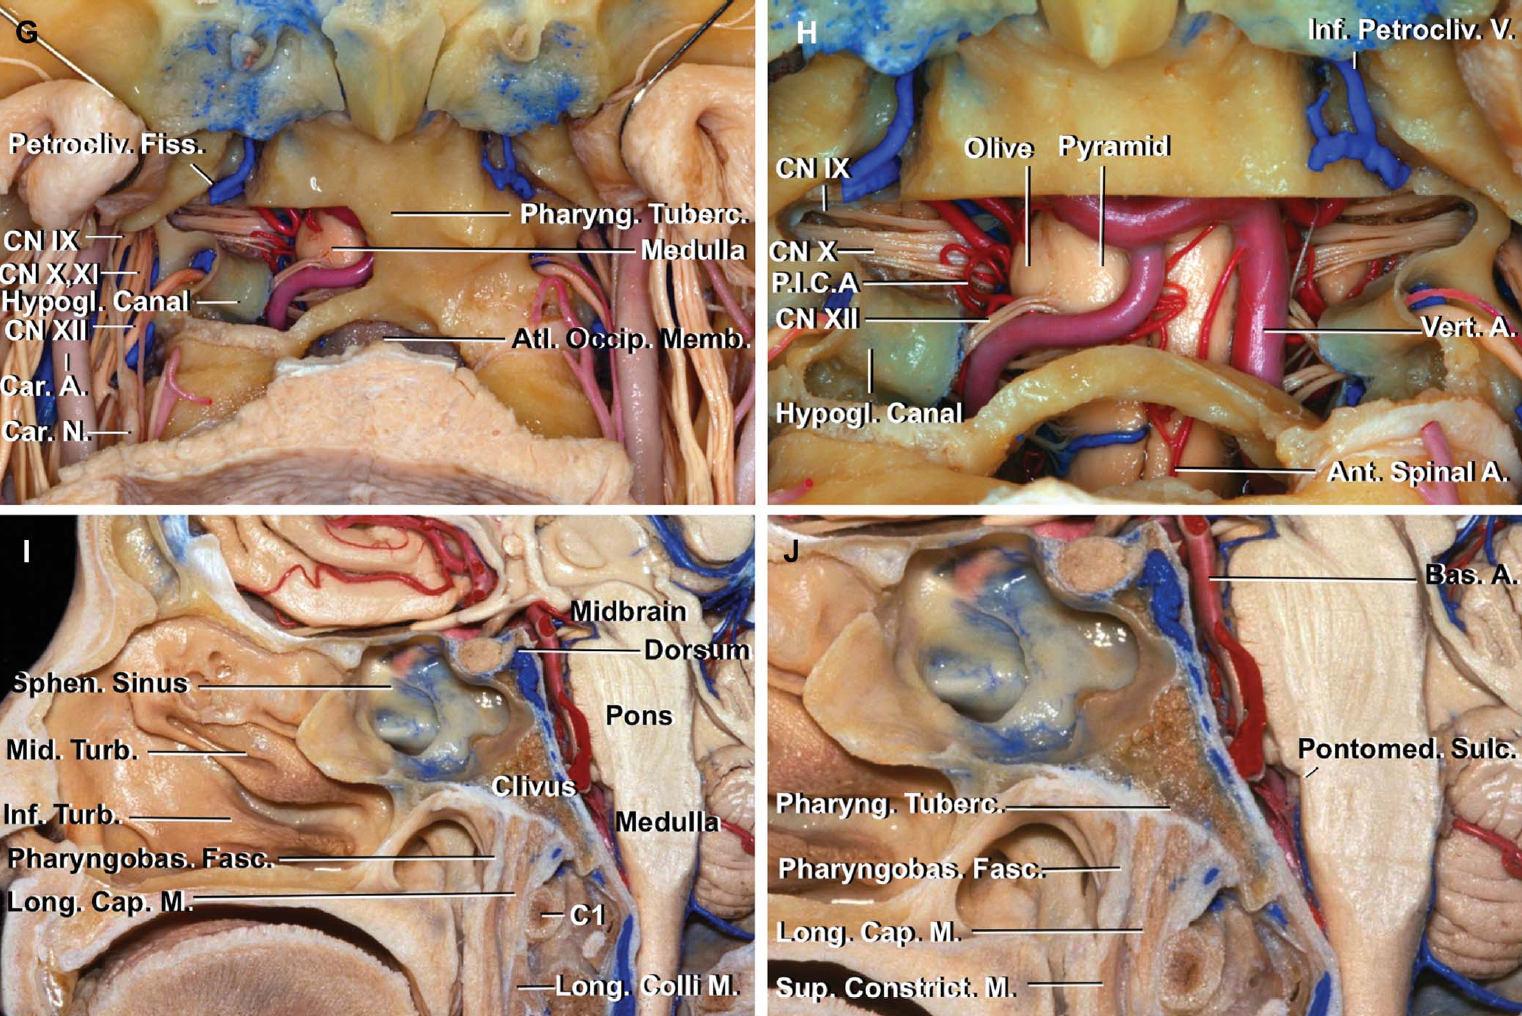 FIGURE 9. G-L. G, the right lower clivus has been drilled while preserving the vidian canal, articular facet of the occipital condyle, and anterior edge of the foramen magnum. The triangular area surrounded by the petroclival fissure, jugular foramen, and hypoglossal canal corresponds to the site of the jugular tubercle on the intracranial surface. Cranial nerves IX, X, and XI course just behind the jugular tubercle. H, enlarged view. The lower clivus has been drilled bilaterally. Opening the lower clival dura exposes the anterior surface of the medulla and the vertebral, posterior inferior cerebellar, and anterior spinal arteries. The glossopharyngeal and vagus nerves arise from the retro-olivary sulcus rostral to and behind the level of origin of the hypoglossal rootlets. The whole cisternal segment of these nerves can be exposed by drilling of the jugular tubercle. The accessory rootlets are hidden by the hypoglossal canals and the vertebral arteries. I, midsagittal section of another specimen showing the relationship between the posterior nasopharynx and lower clivus. The anterior surface of the clivus leans approximately 45° anterior in the view through the nasal cavity. The posterior nasopharyngeal wall has 3 layers: mucosal, fascial, and muscular. The pharyngobasilar fascia and longus capitis muscles are attached to the clivus; the longus colli muscles are attached to the atlas. The rectus capitis anterior muscle is not shown because the muscle is situated lateral to the midline. J, enlarged view. The pharyngobasilar fascia diminishes in thickness as it descends and gradually blends into the superior pharyngeal constrictor at the level of soft palate. The anterior edge of the pharyngeal tubercle is located at almost the same level as the pontomedullary sulcus. A., artery; Ant., anterior; Asc., ascending; Atl., atlanto; Bas., basilar; Cap., capitis; Car., carotid; CN, cranial nerve; Cond., condyle; Conf., confluence; Constrict., constrictor; Eust., eustachian;